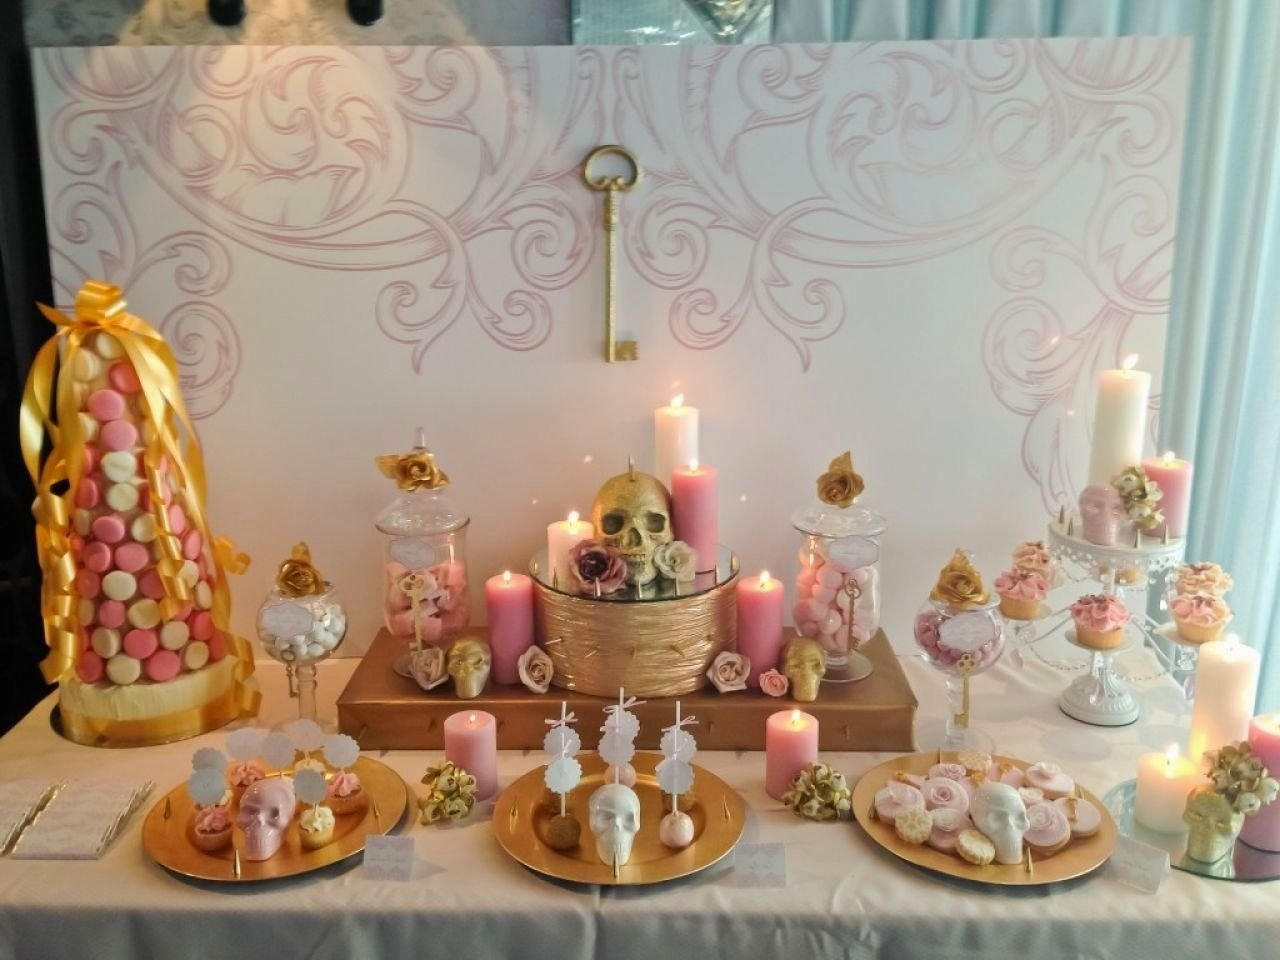 10 Pretty Ideas For 21St Birthday Party themes birthday 21st birthday party ideas for her as well as 21st 1 2020